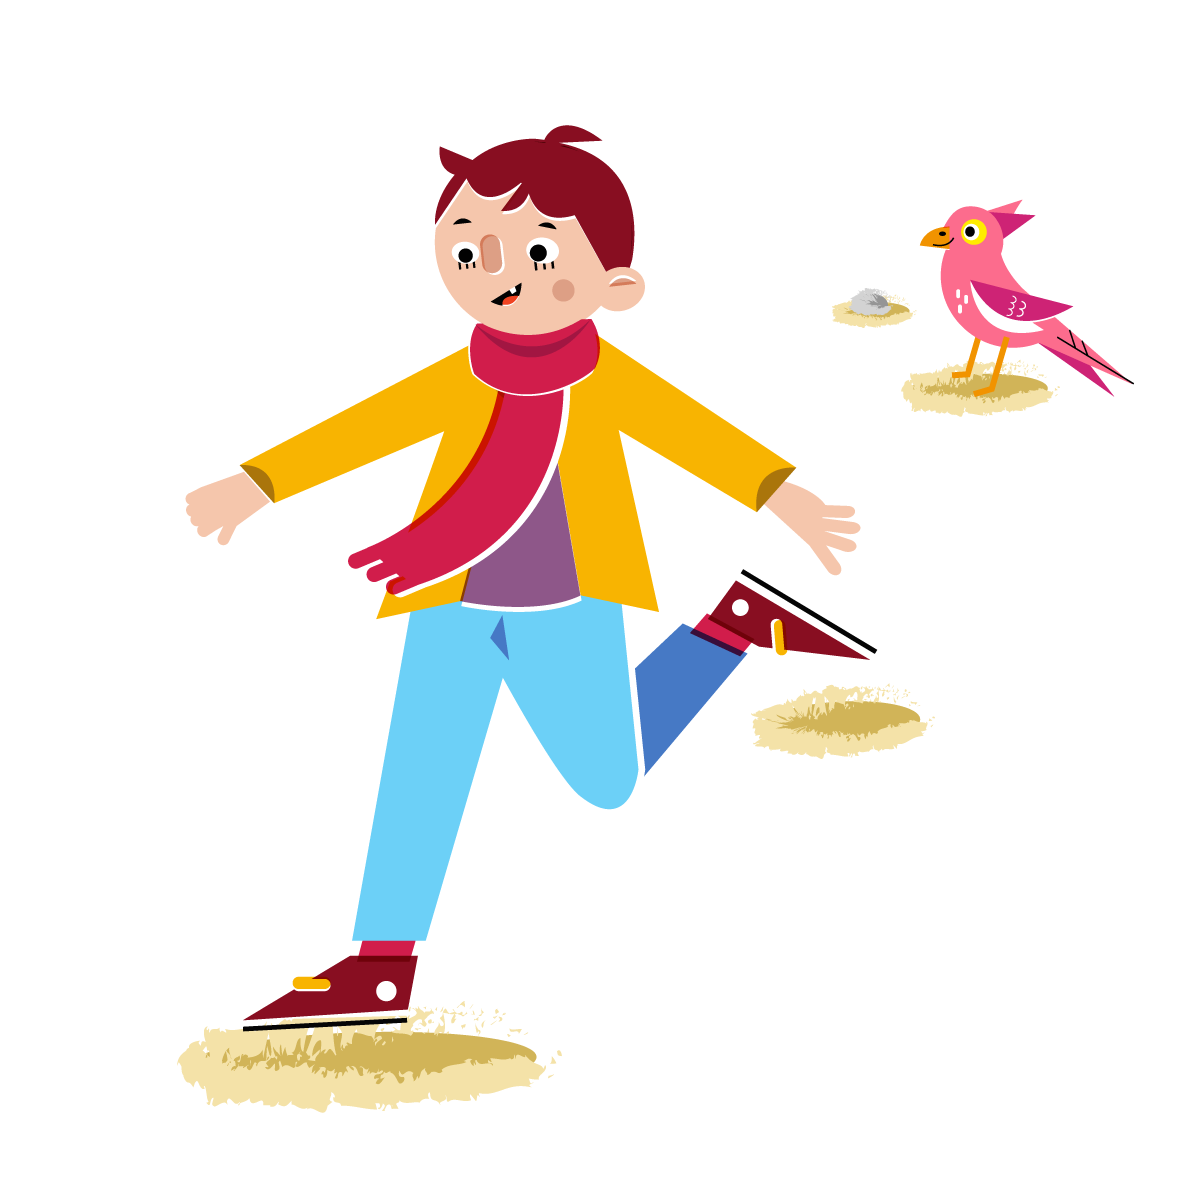 Boy playing - Vector Illustration © Emeline Barrea, All rights reserved